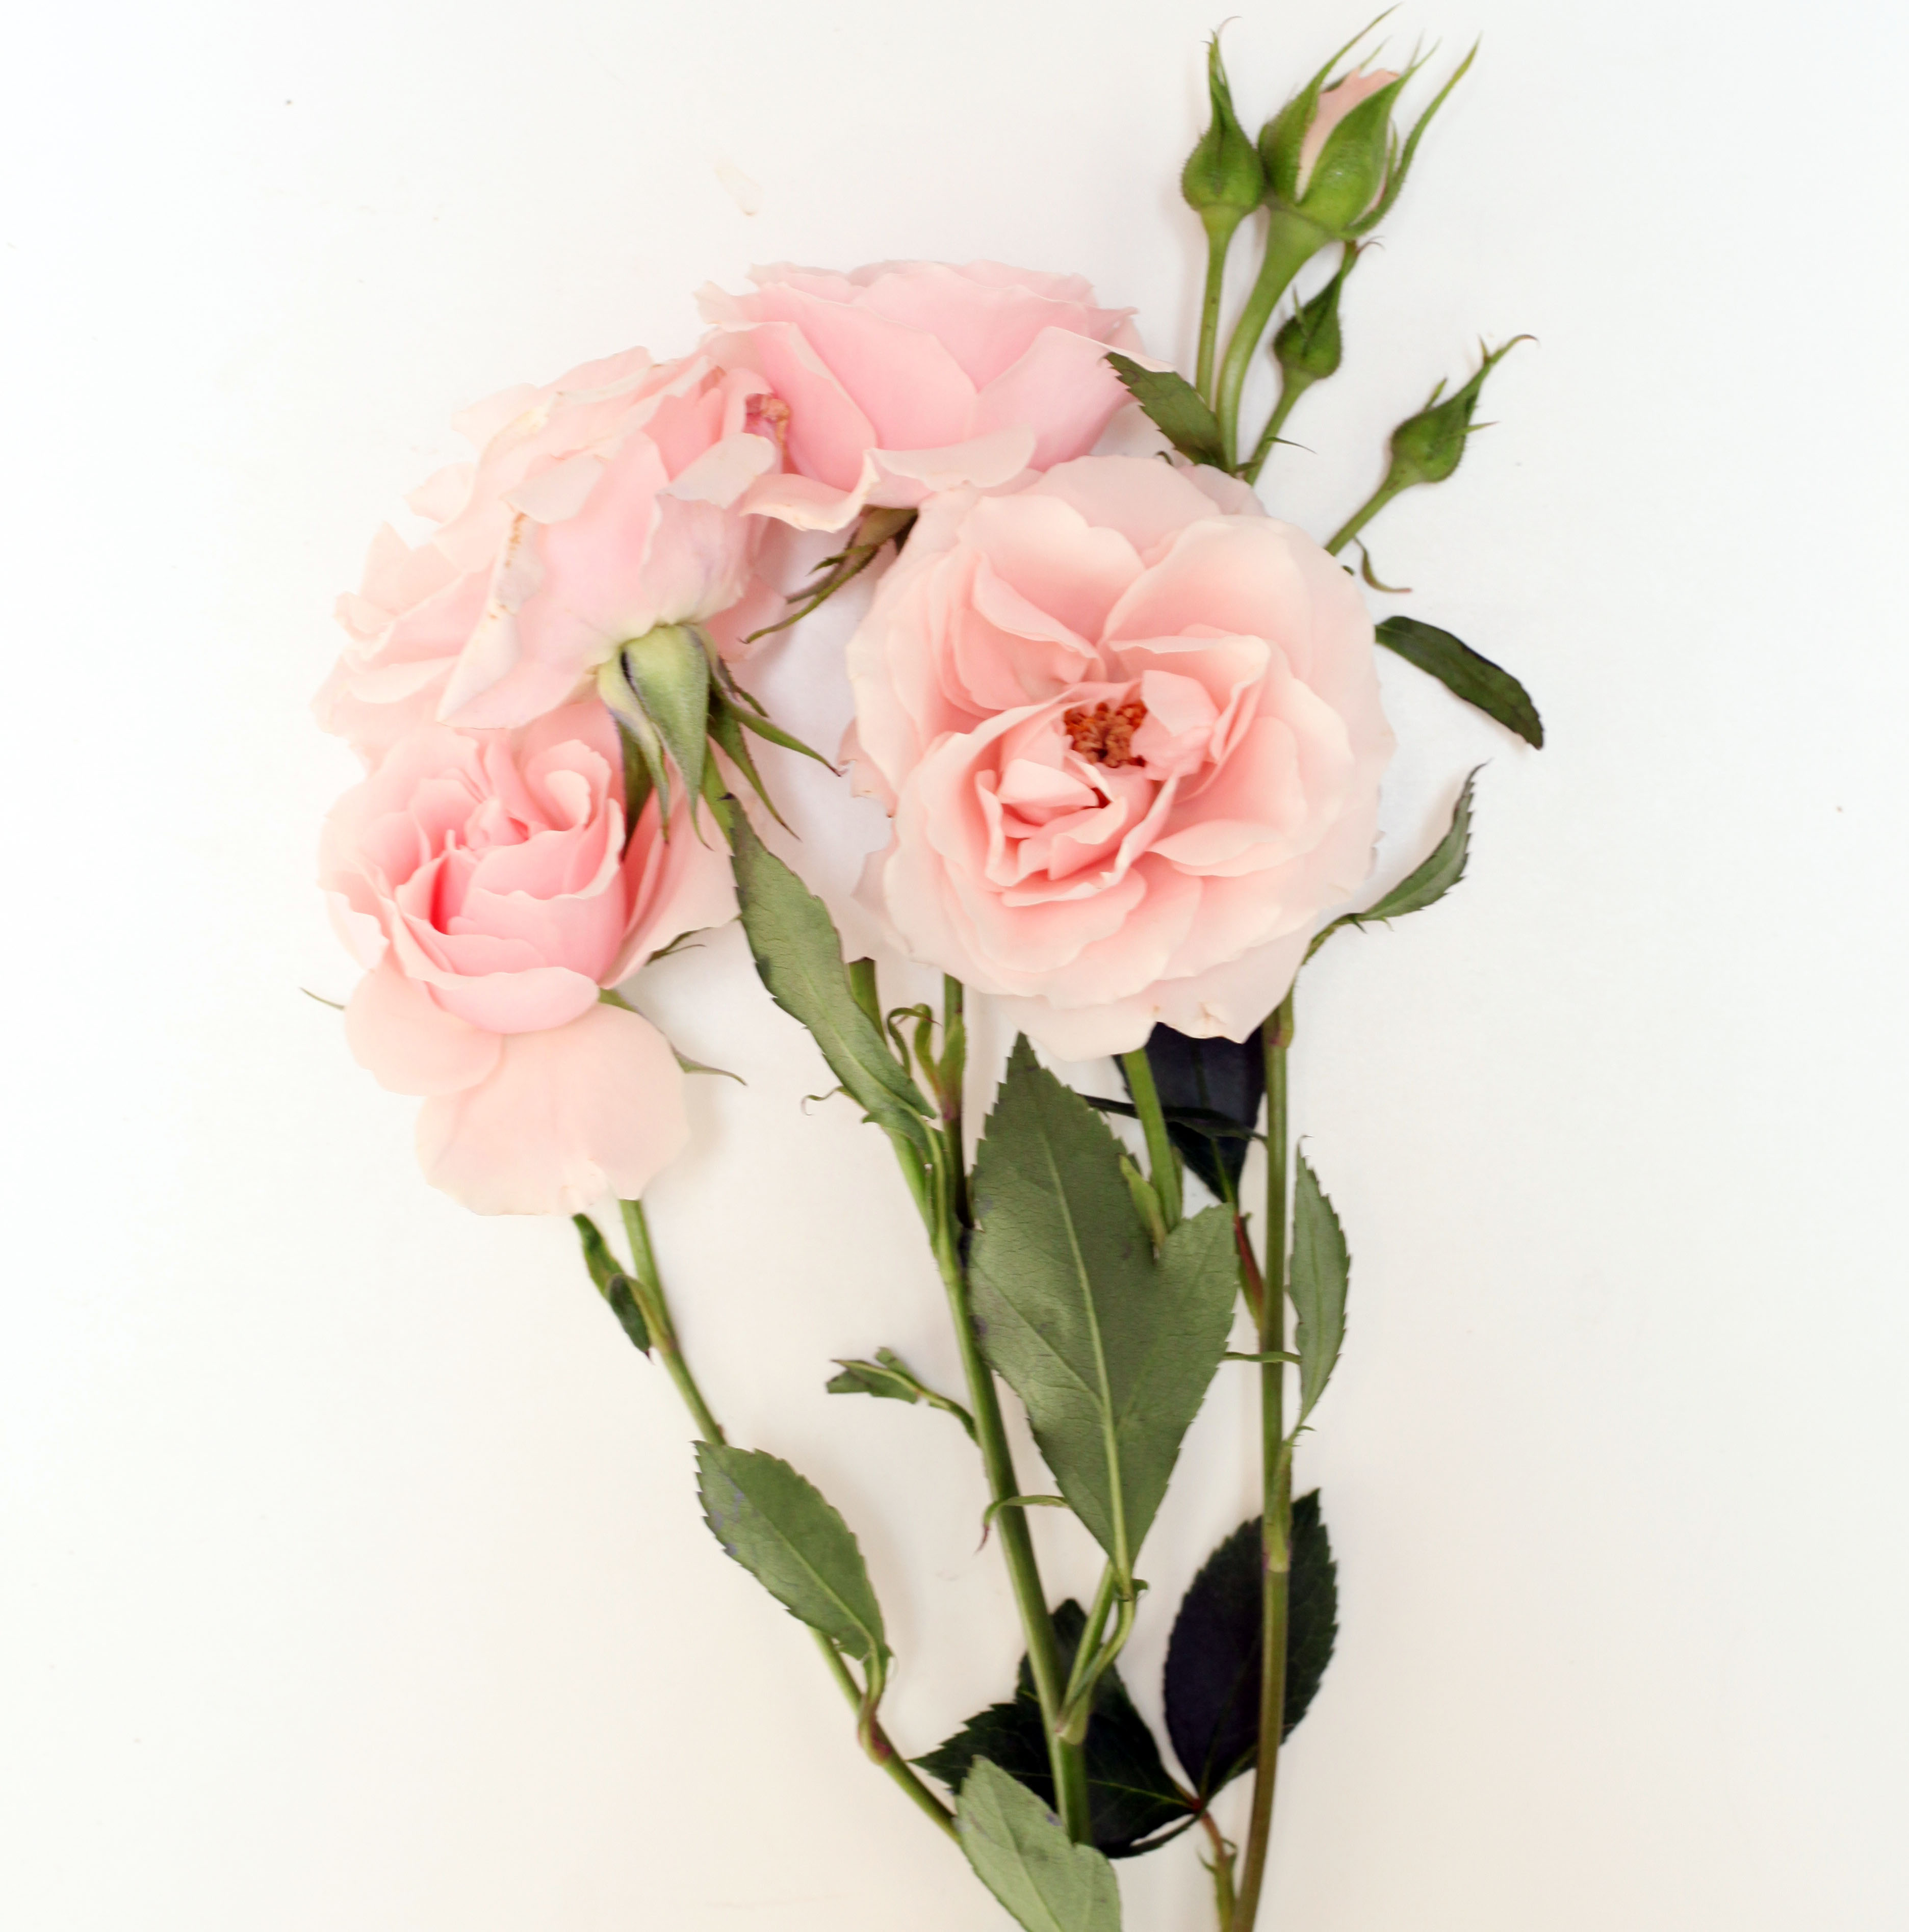 pink spray rose- poppies and posies